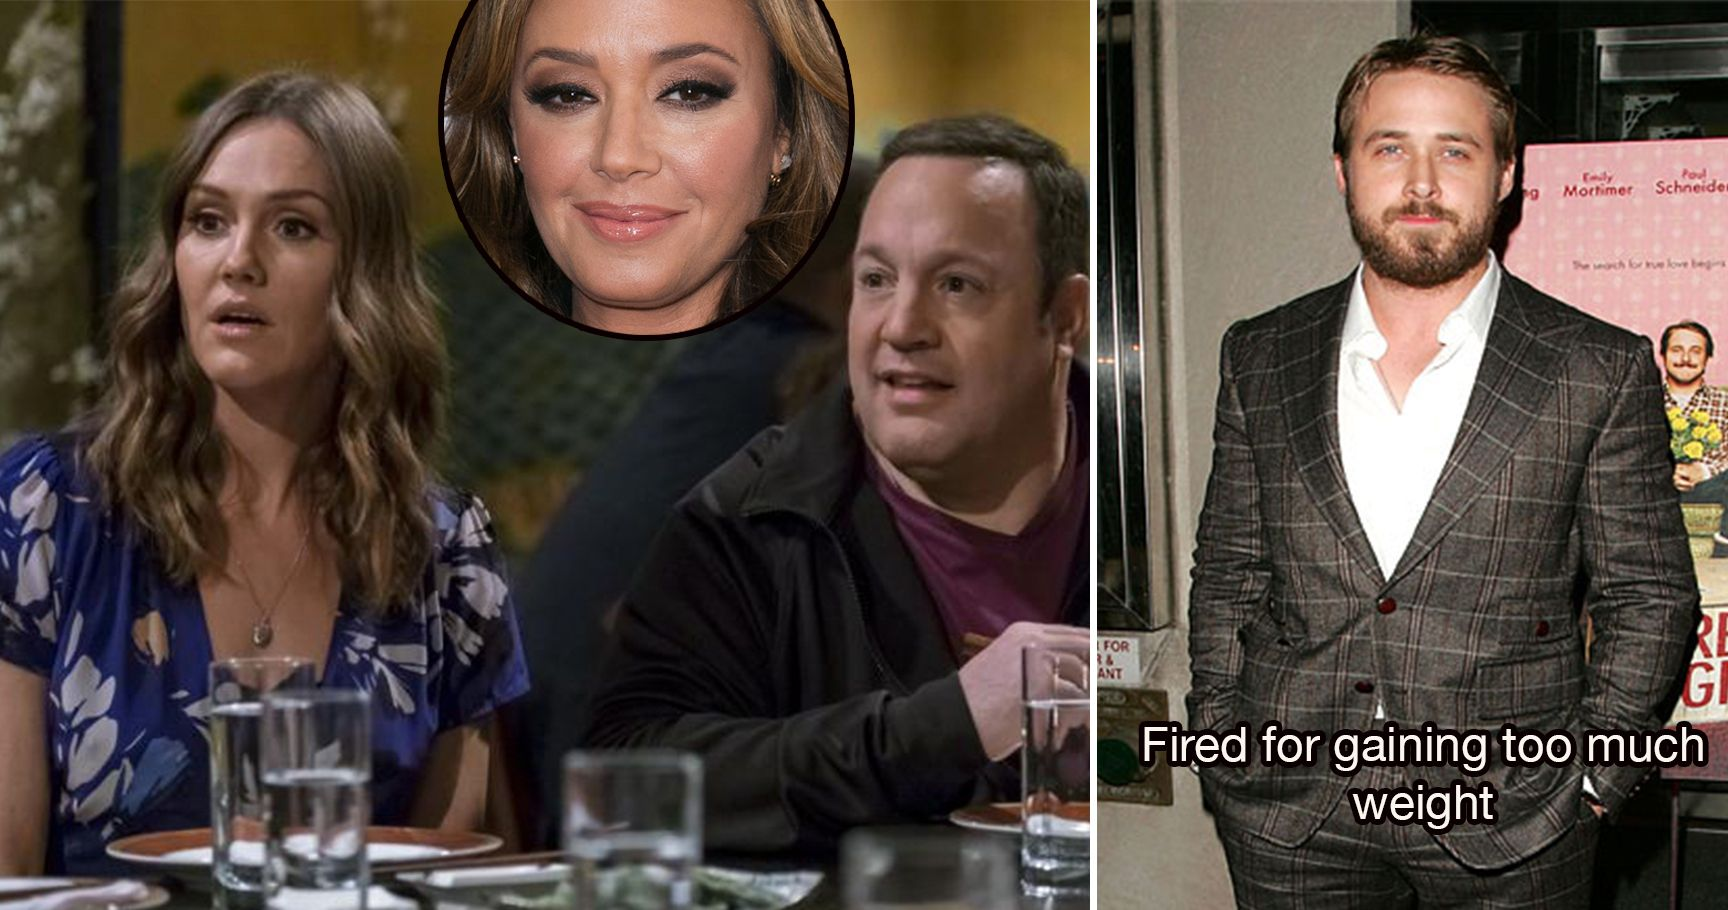 15 Scandalous Times Celebrities Were Fired From Set